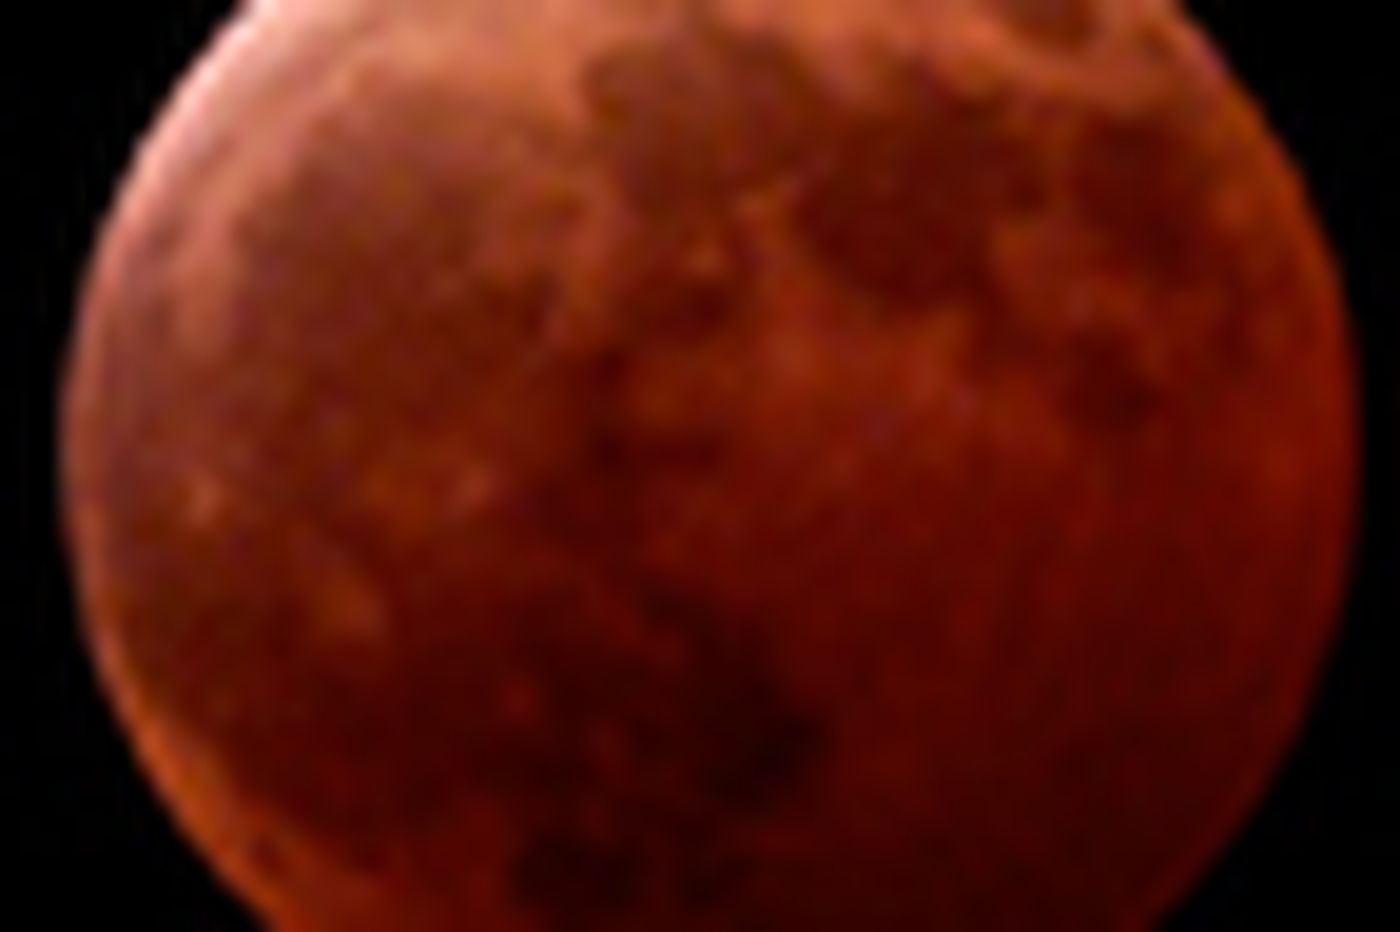 Winter solstice brings a special treat: Lunar eclipse